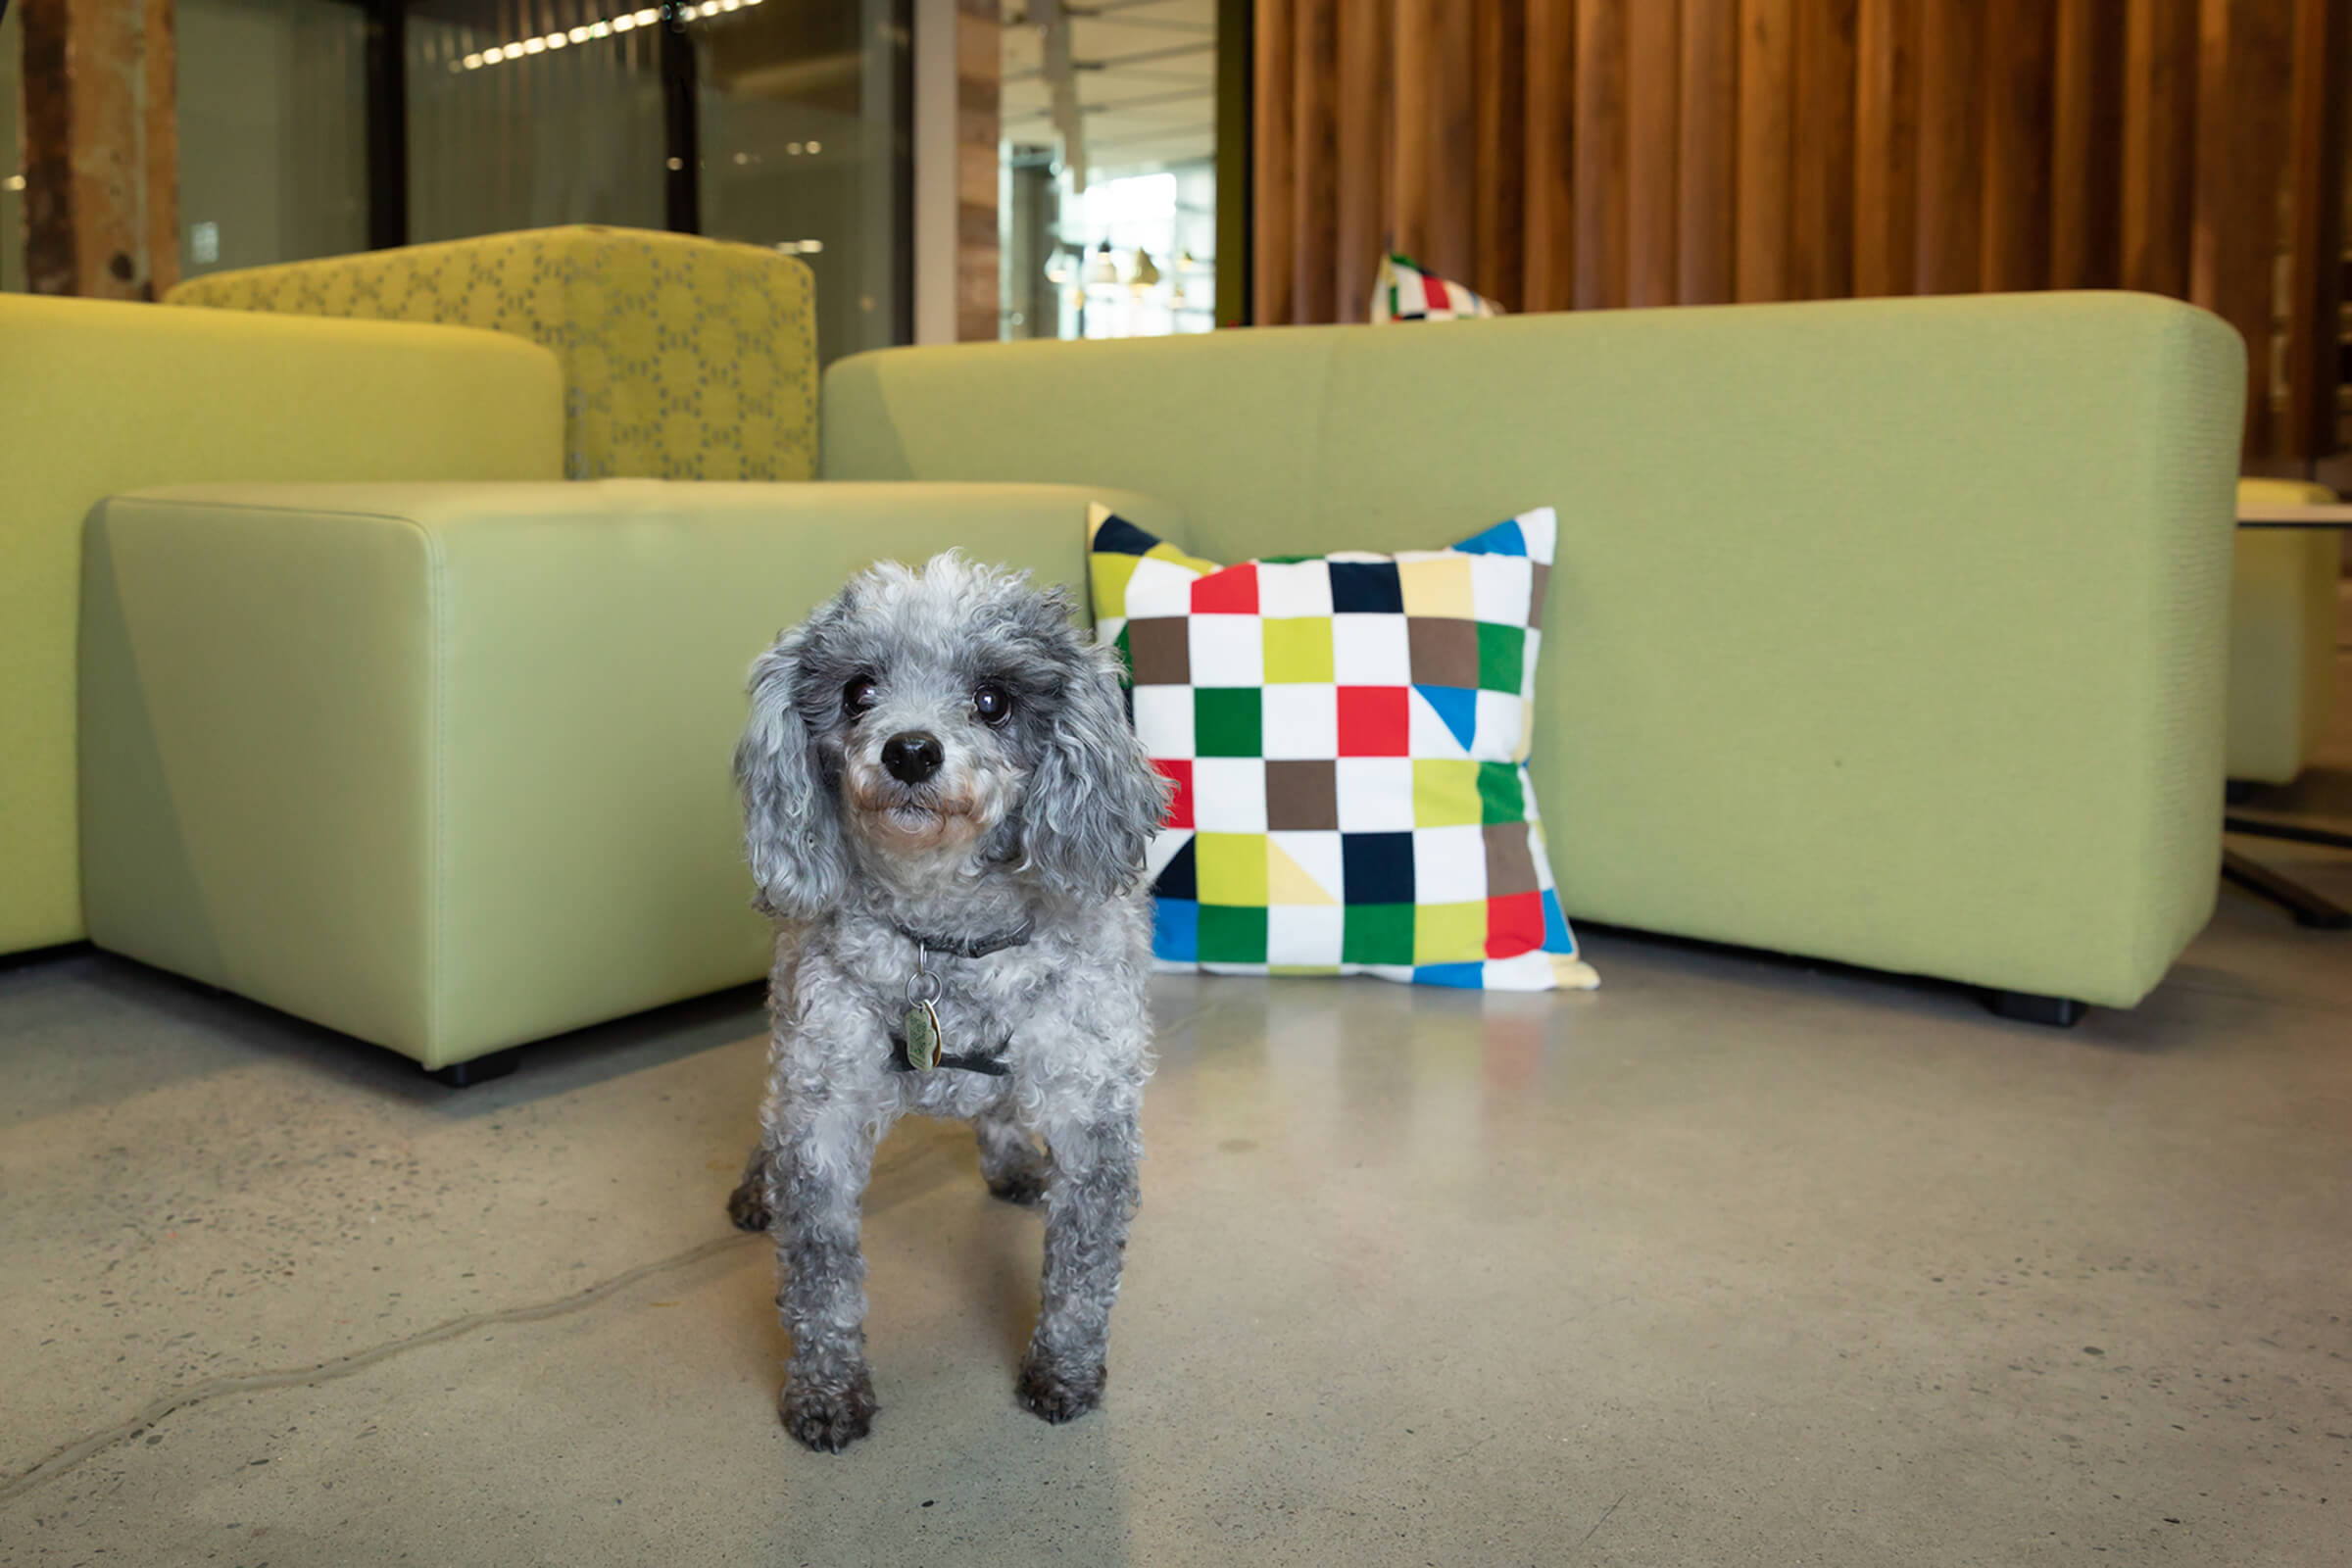 mini poodle in toronto office with green couch